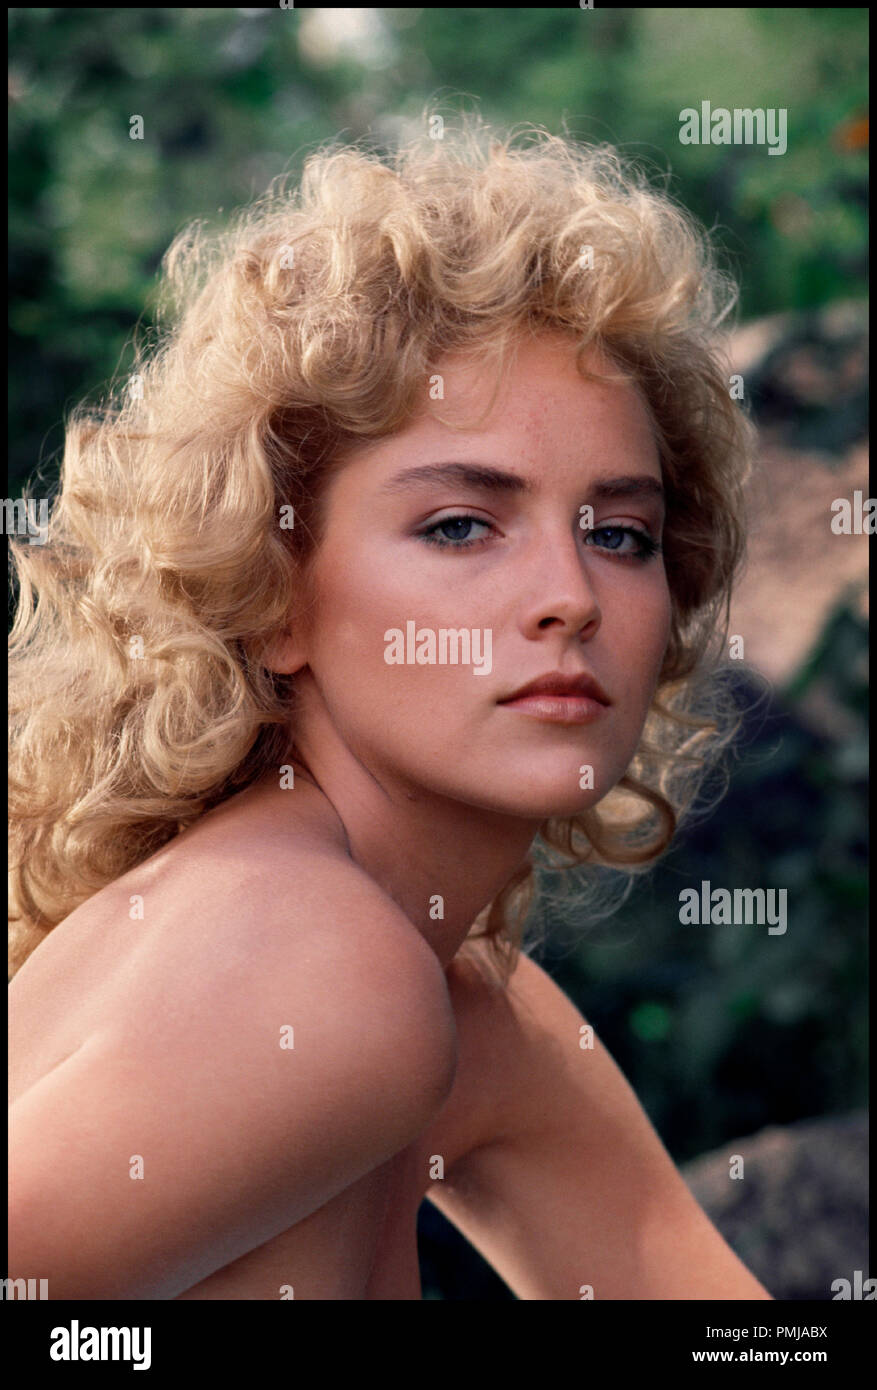 Watch Sharon Stone Cold Steel - US video